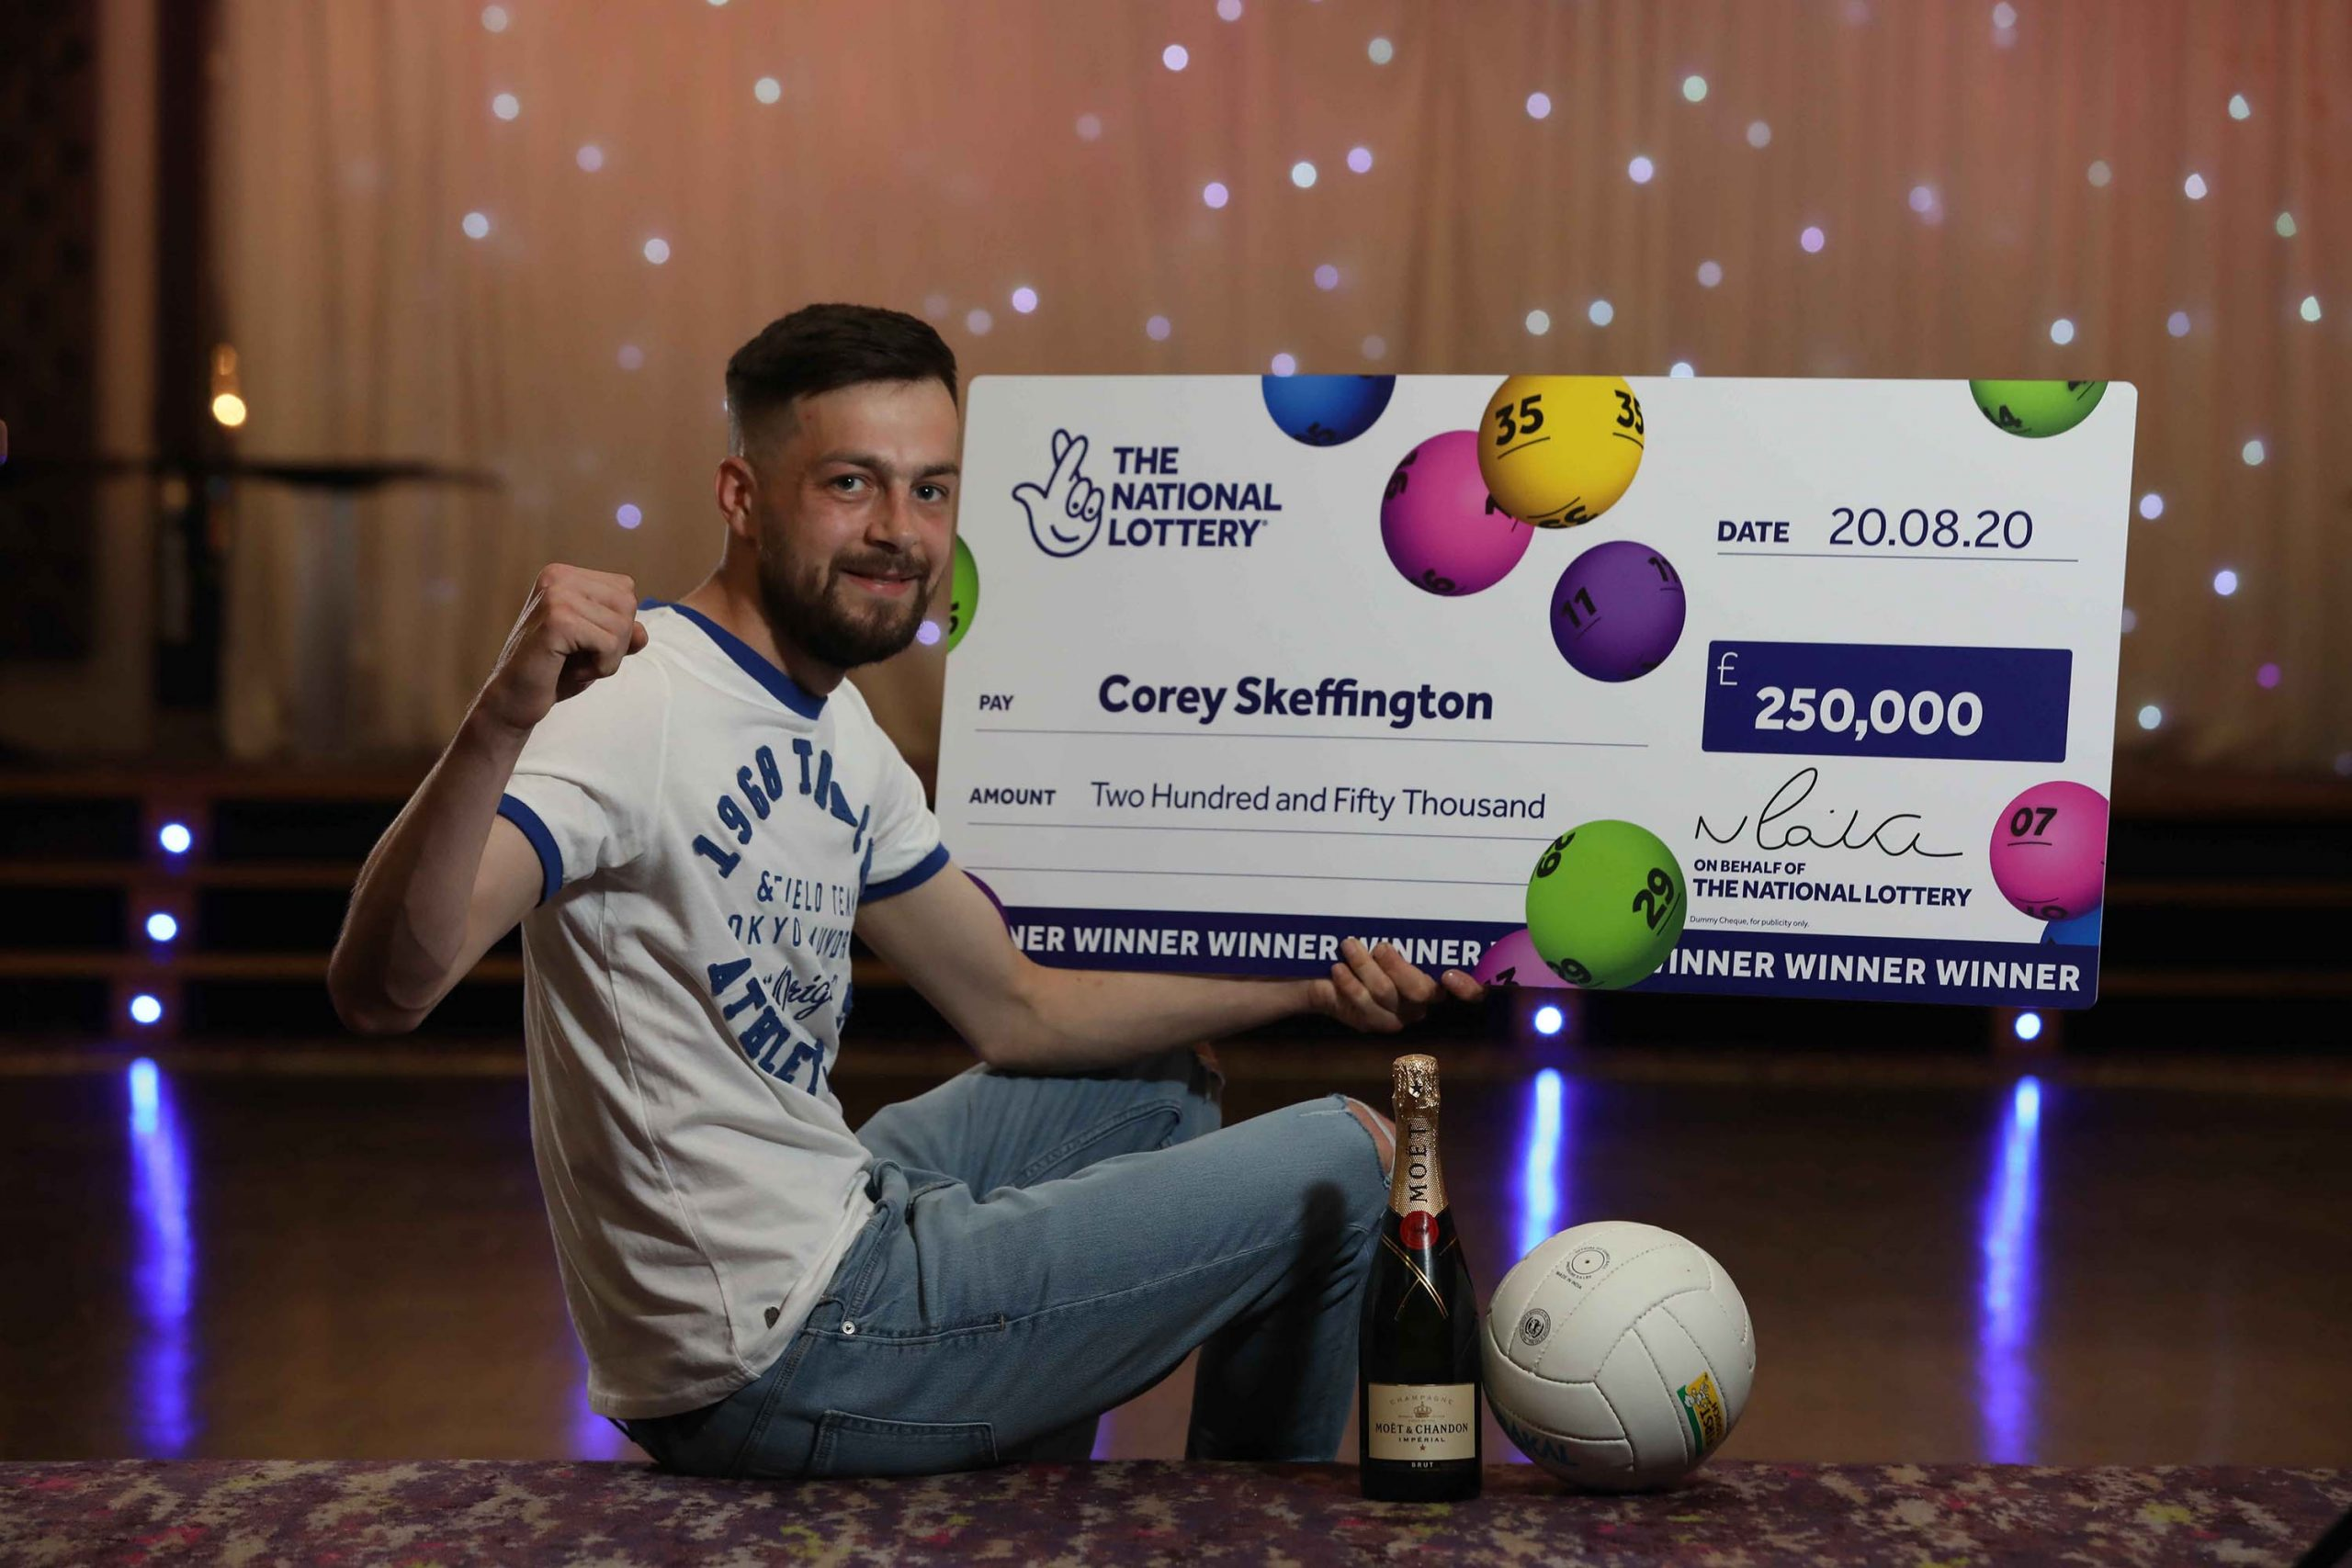 BIG WIN: Corey Skeffington, a young footballer from County Tyrone, is celebrating his first big win of the season after scooping a whopping £250,000 on a National Lottery Scratchcard. Corey (23), a defender for Coalisland Fianna FC's newly formed 'Thirds' team, scored big when he bought the winning £250,000 Gold scratchcard at the Mace store on Loughview Road, Coalisland. The card costs £2 and offers a 1 in 3.99 overall chance of winning a prize, with prizes ranging from £2 up to the top prize of £250,000.